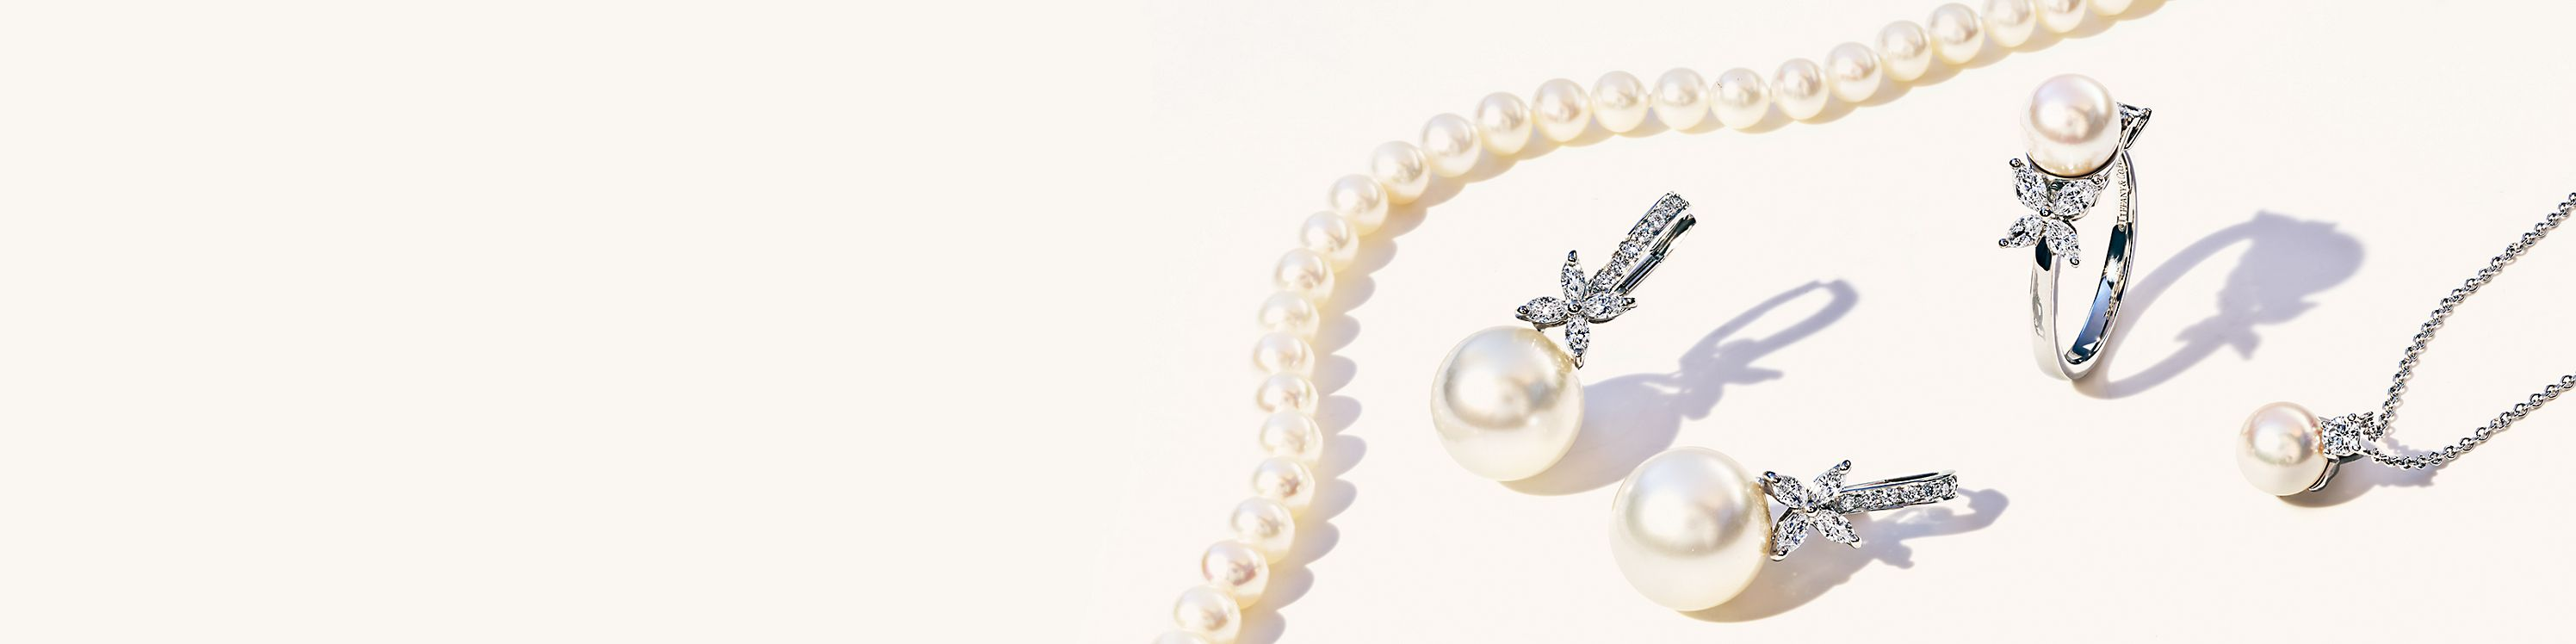 fa08cd371 Pearl Jewellery | Timeless Elegance | Tiffany & Co.